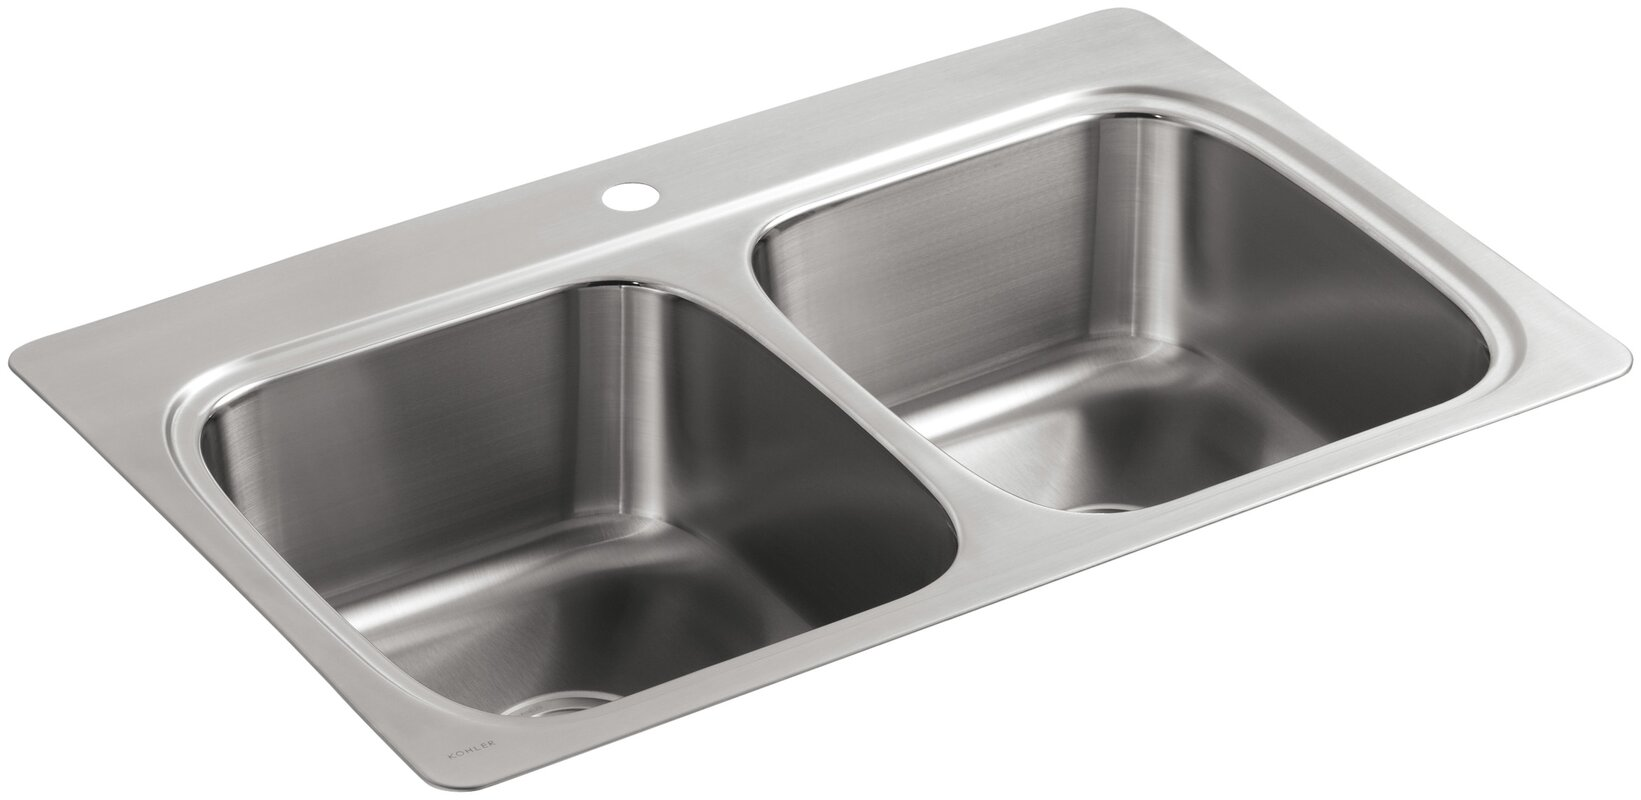 kohler verse top mount double equal bowl kitchen sink with single